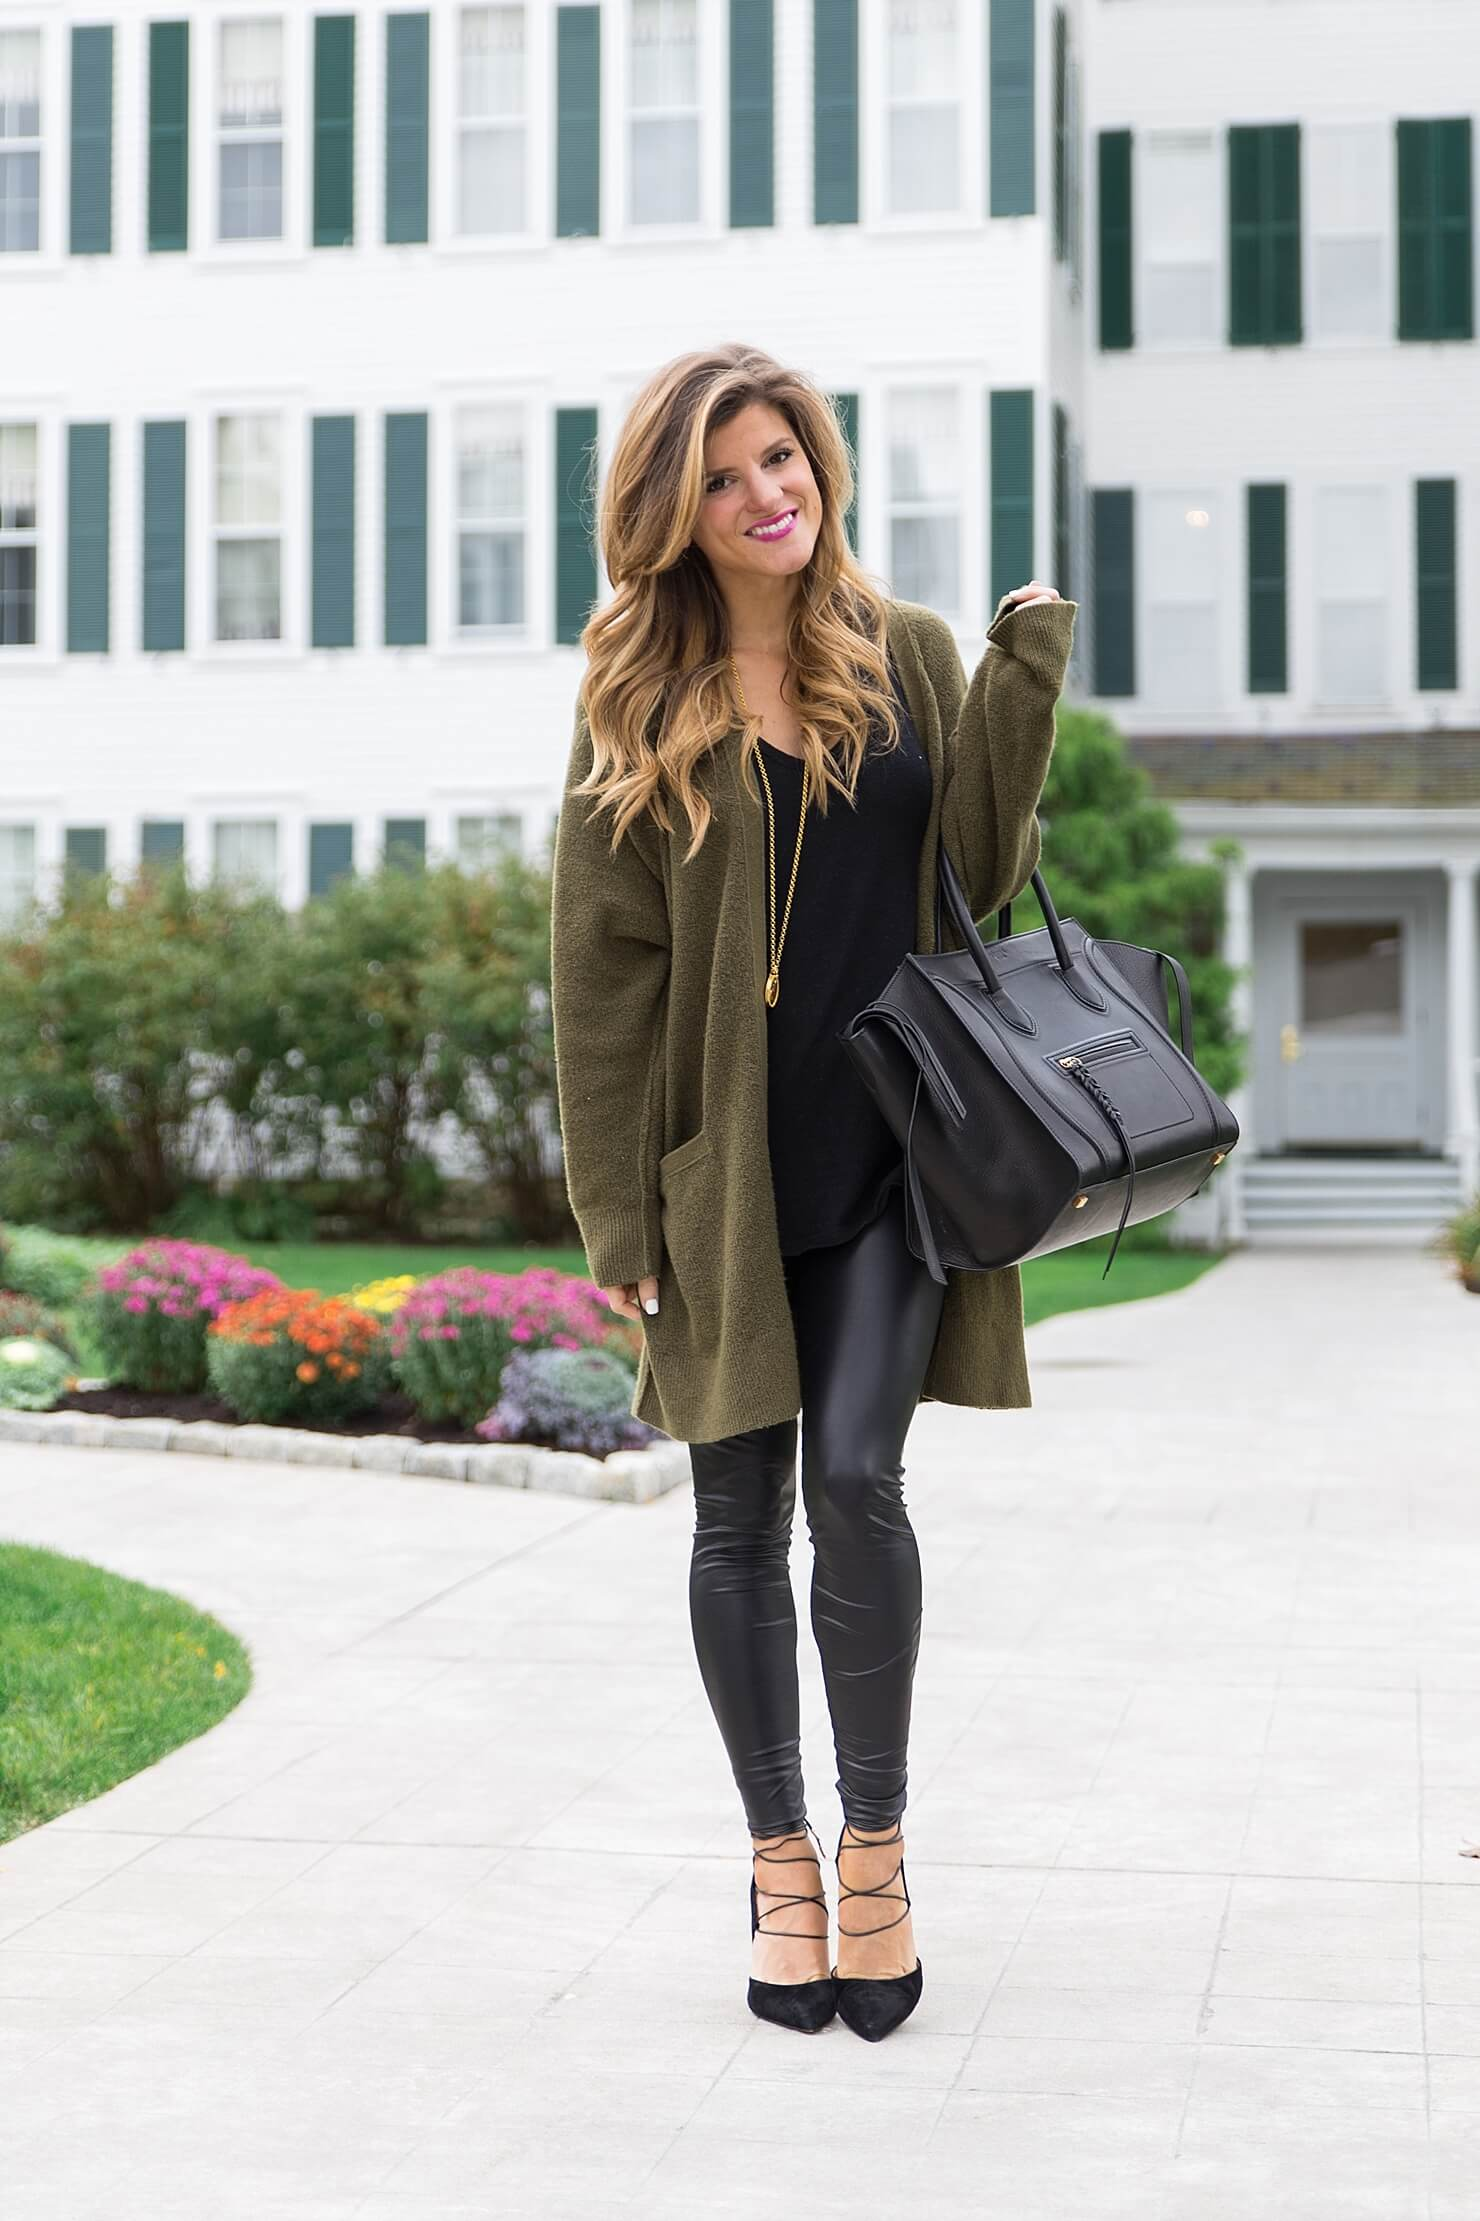 Women Leather Pants with Long Cardigan